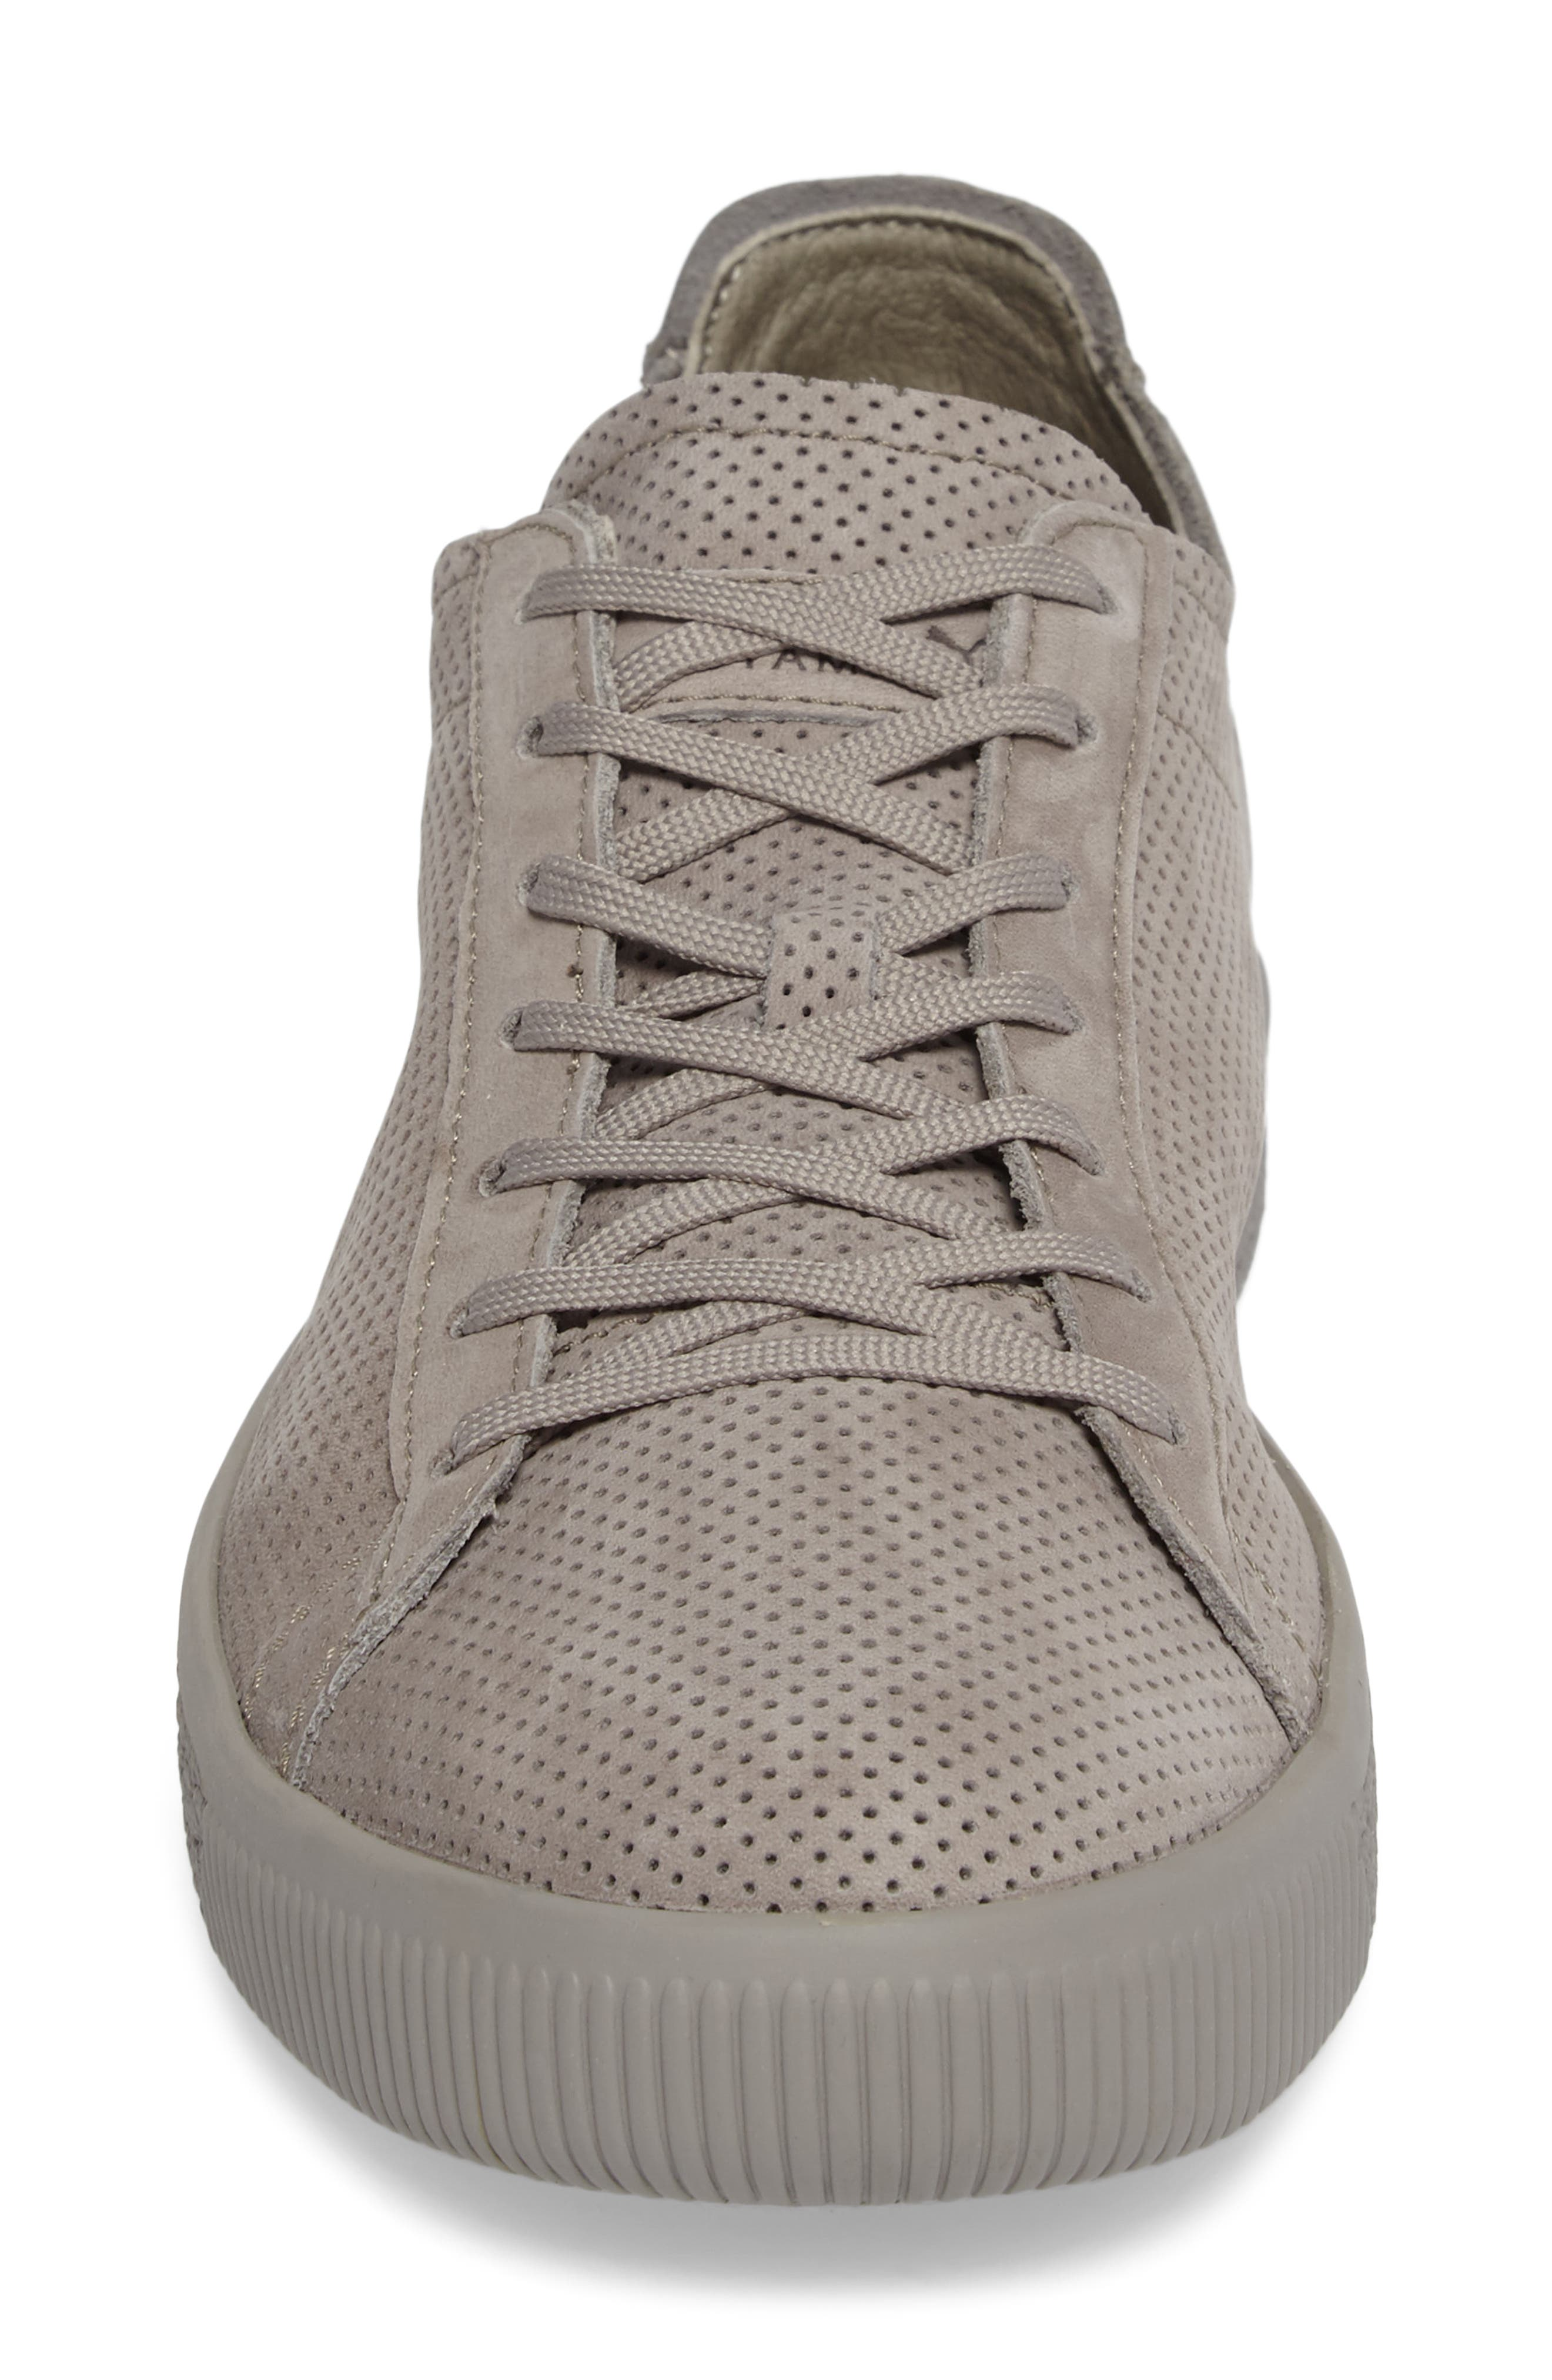 Stampd Clyde Sneaker,                             Alternate thumbnail 4, color,                             Drizzle/ Drizzle Leather